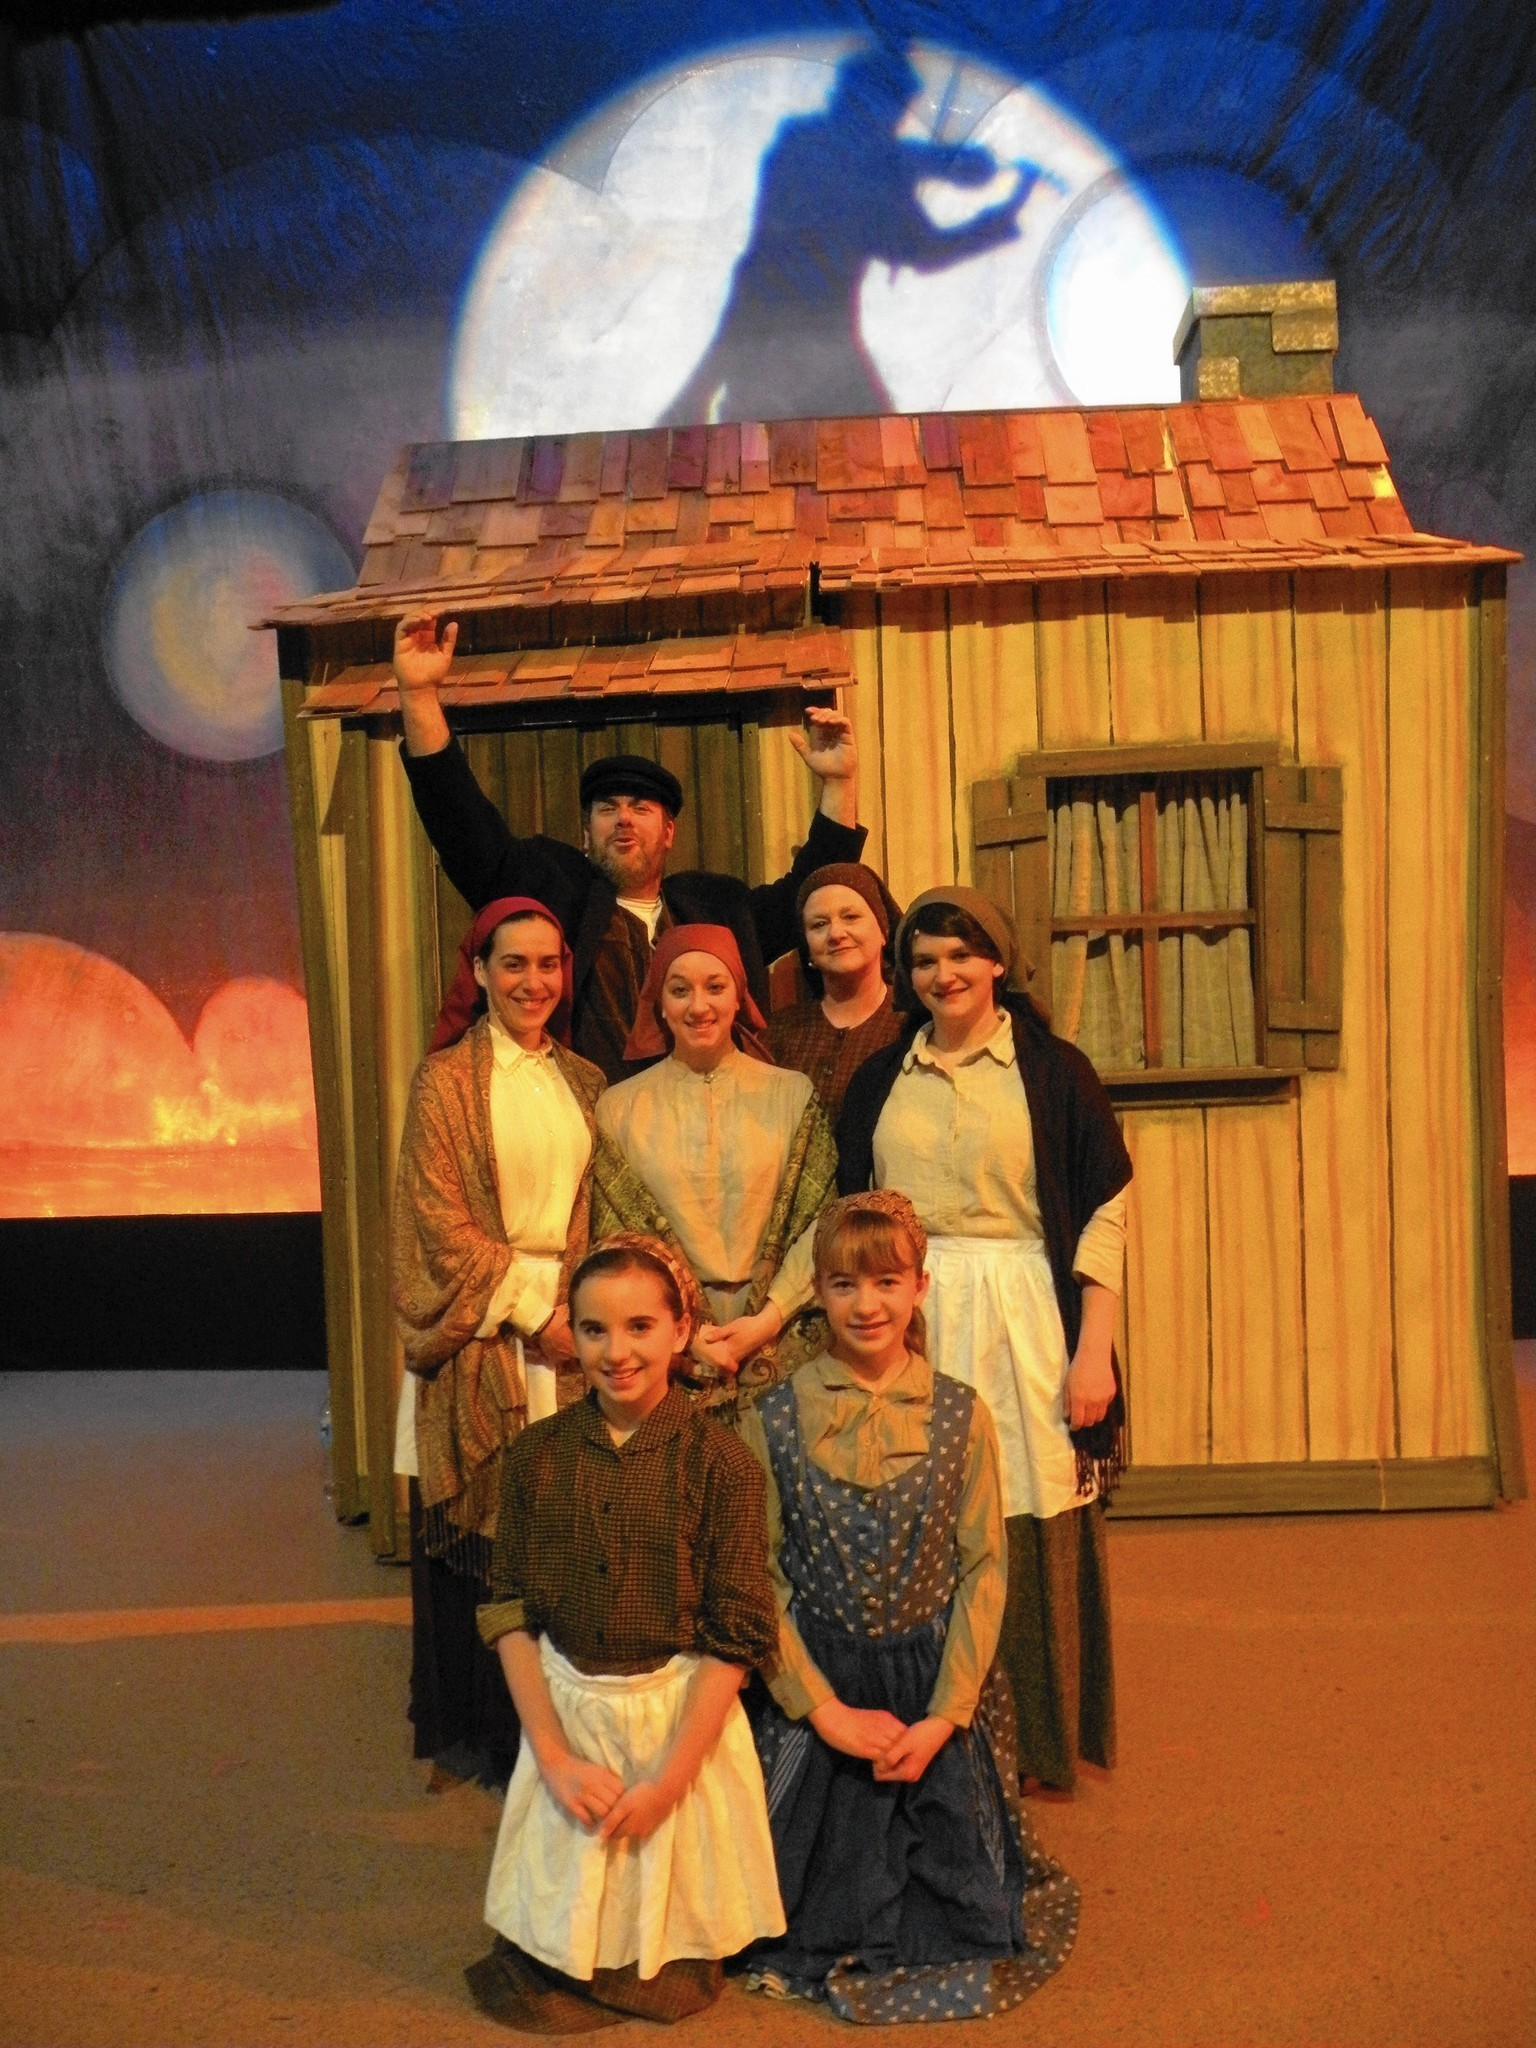 Fiddler On The Roof Takes Stage At Phoenix Festival